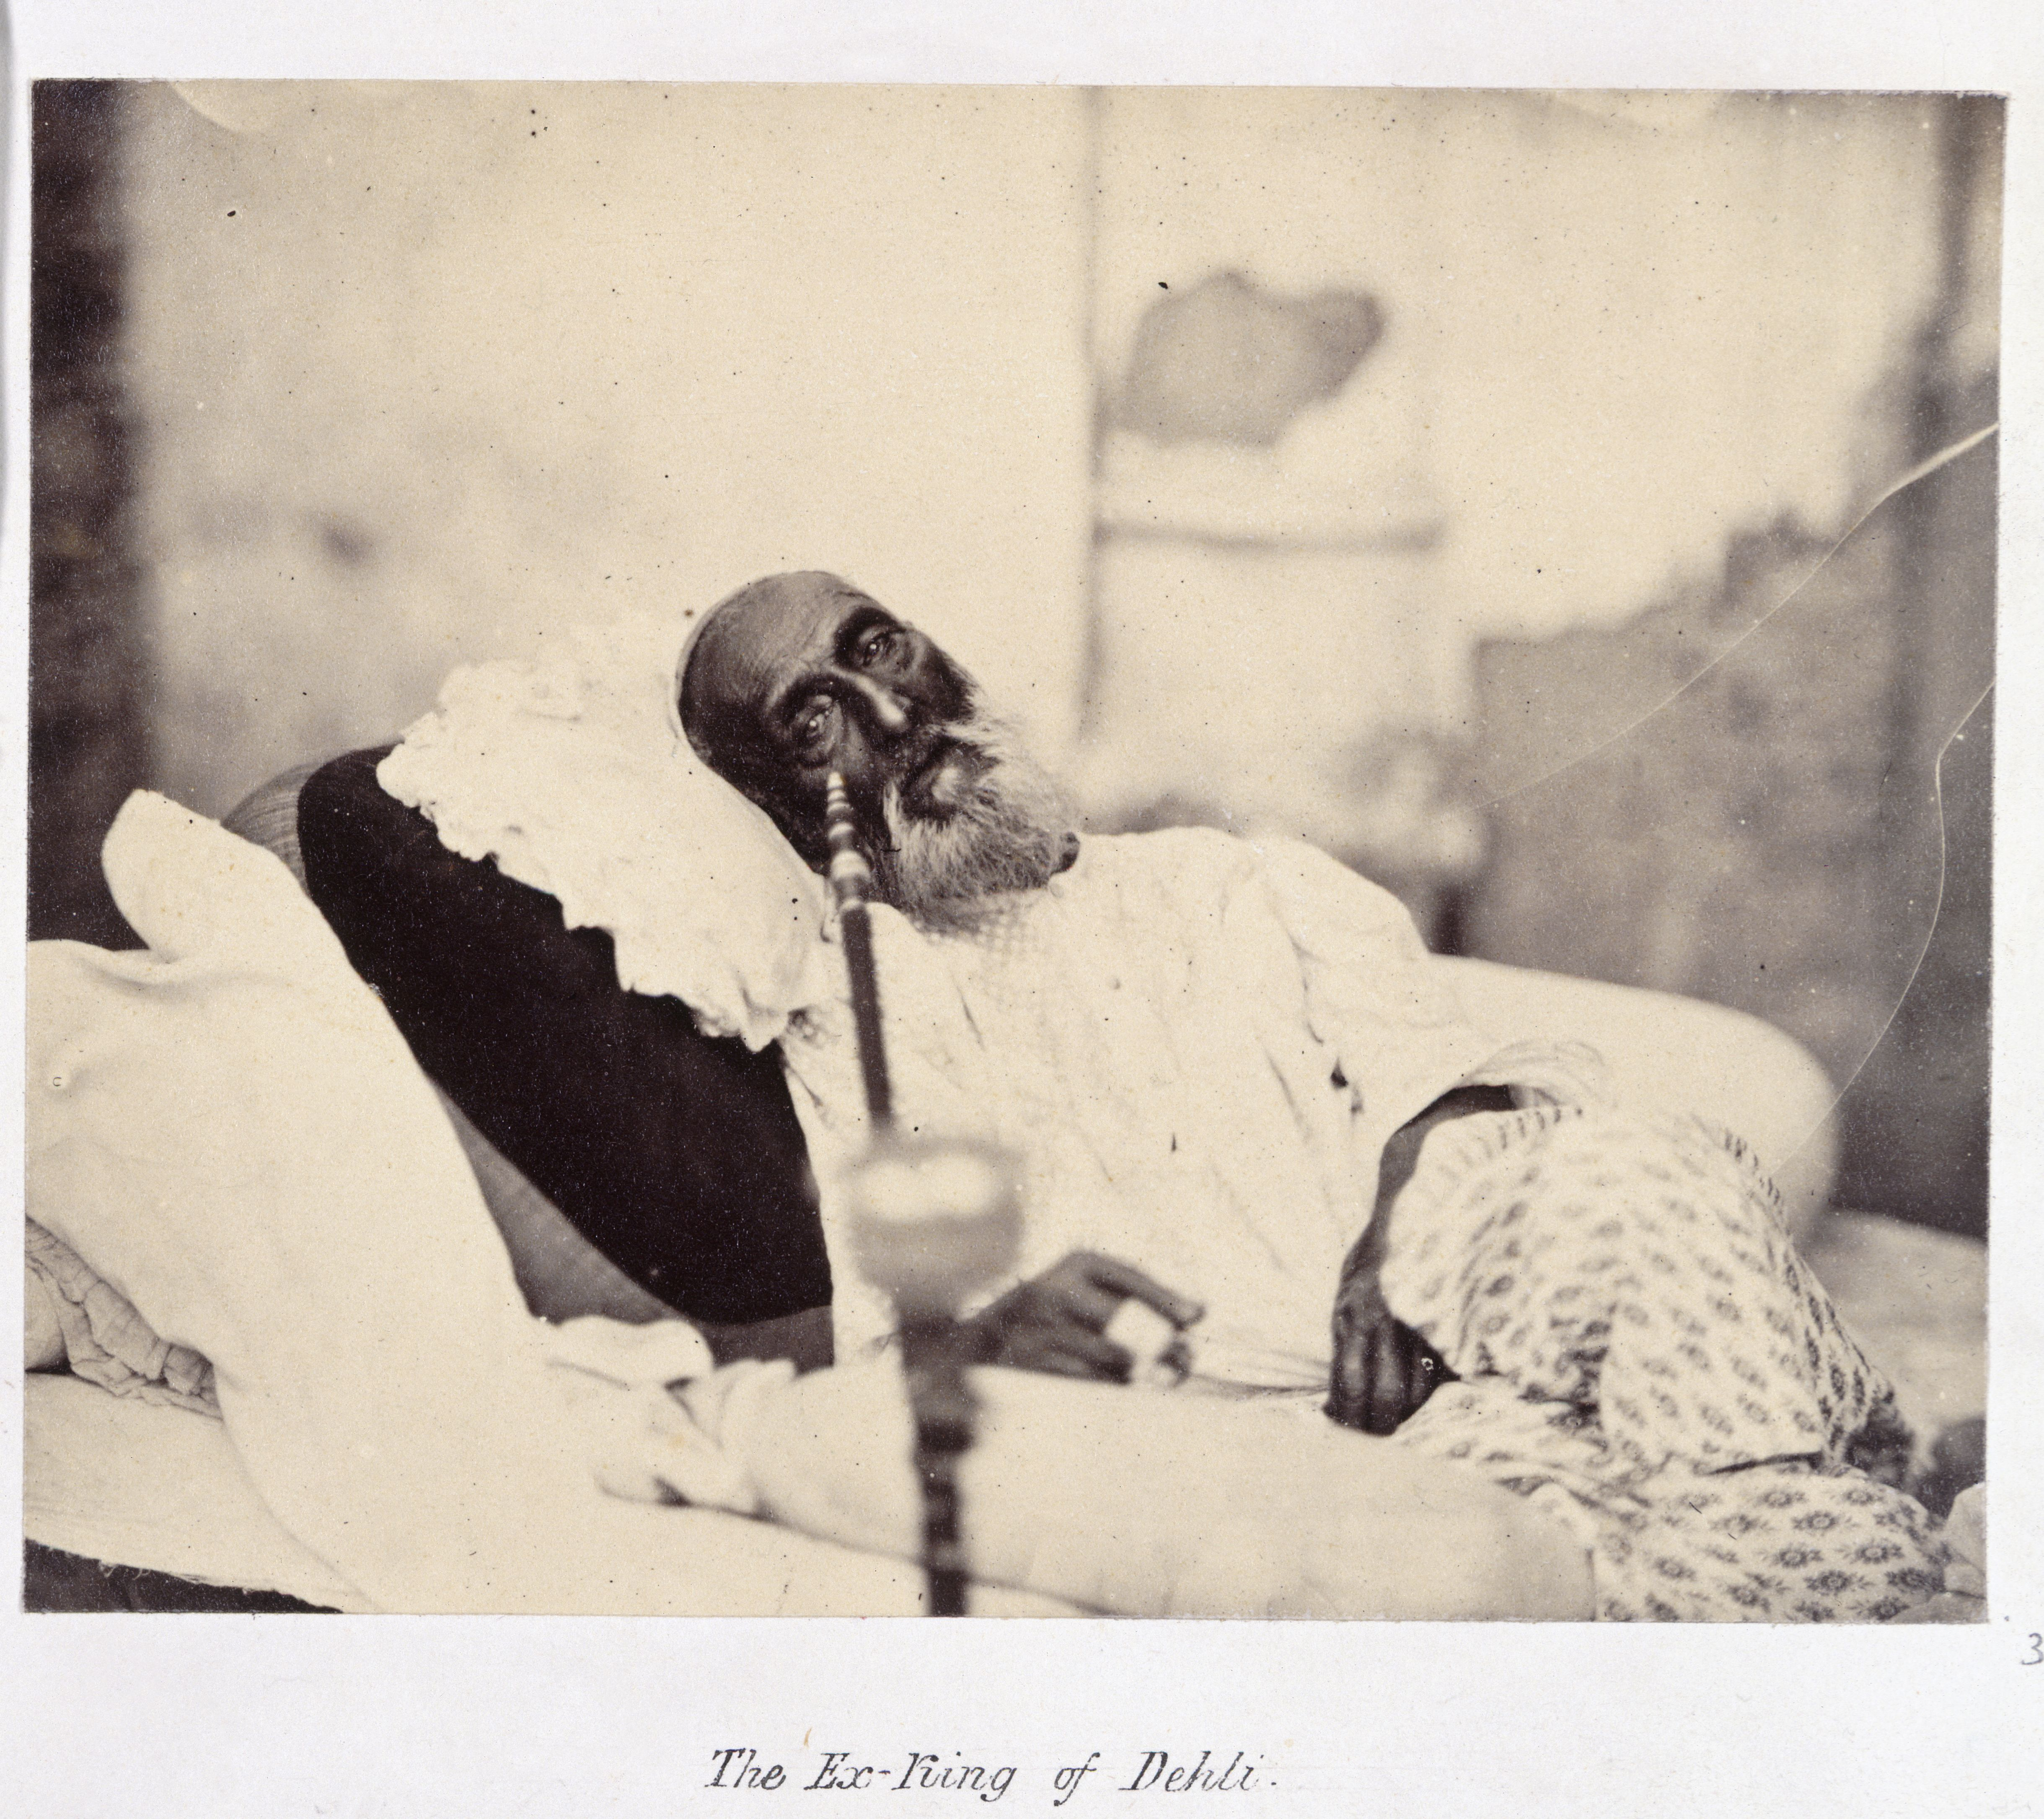 The Ex-King of Delhi Bahadur Shah II awaiting trial May 1858 on display in Mughal India c British Library Board